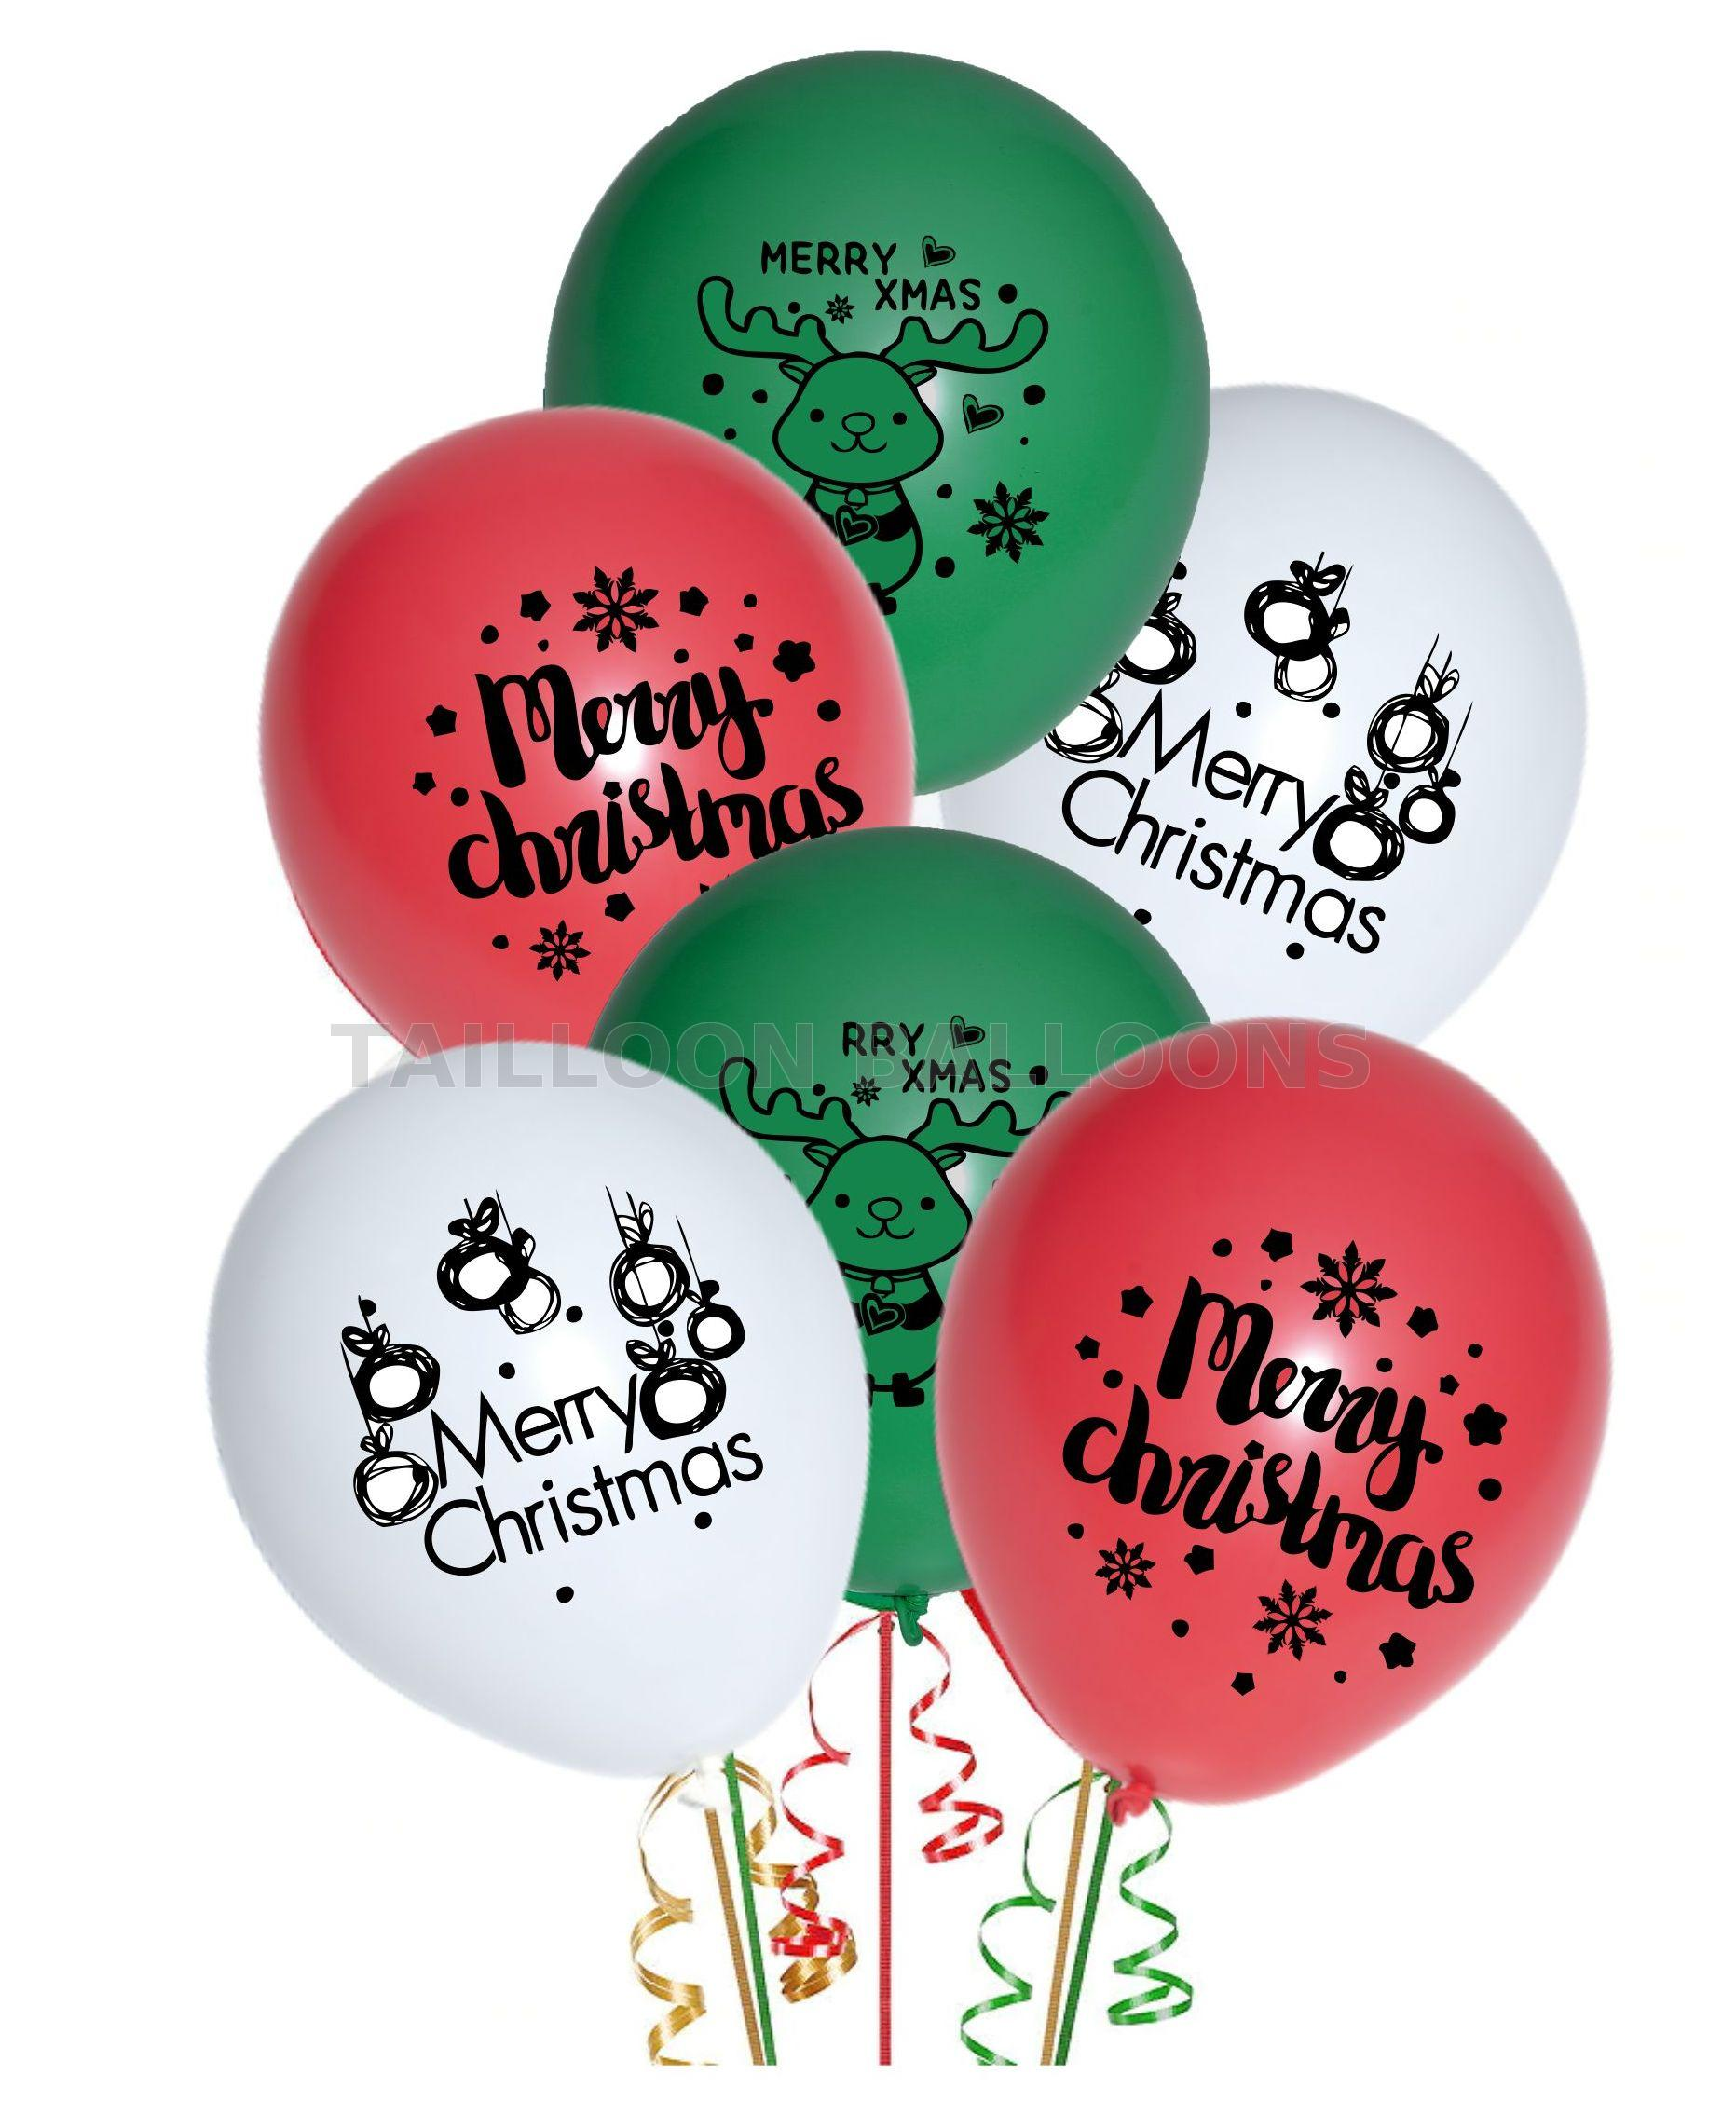 Merry Christmas Latex Ballons Green /& Red Xmas Decoration Pack Of 100